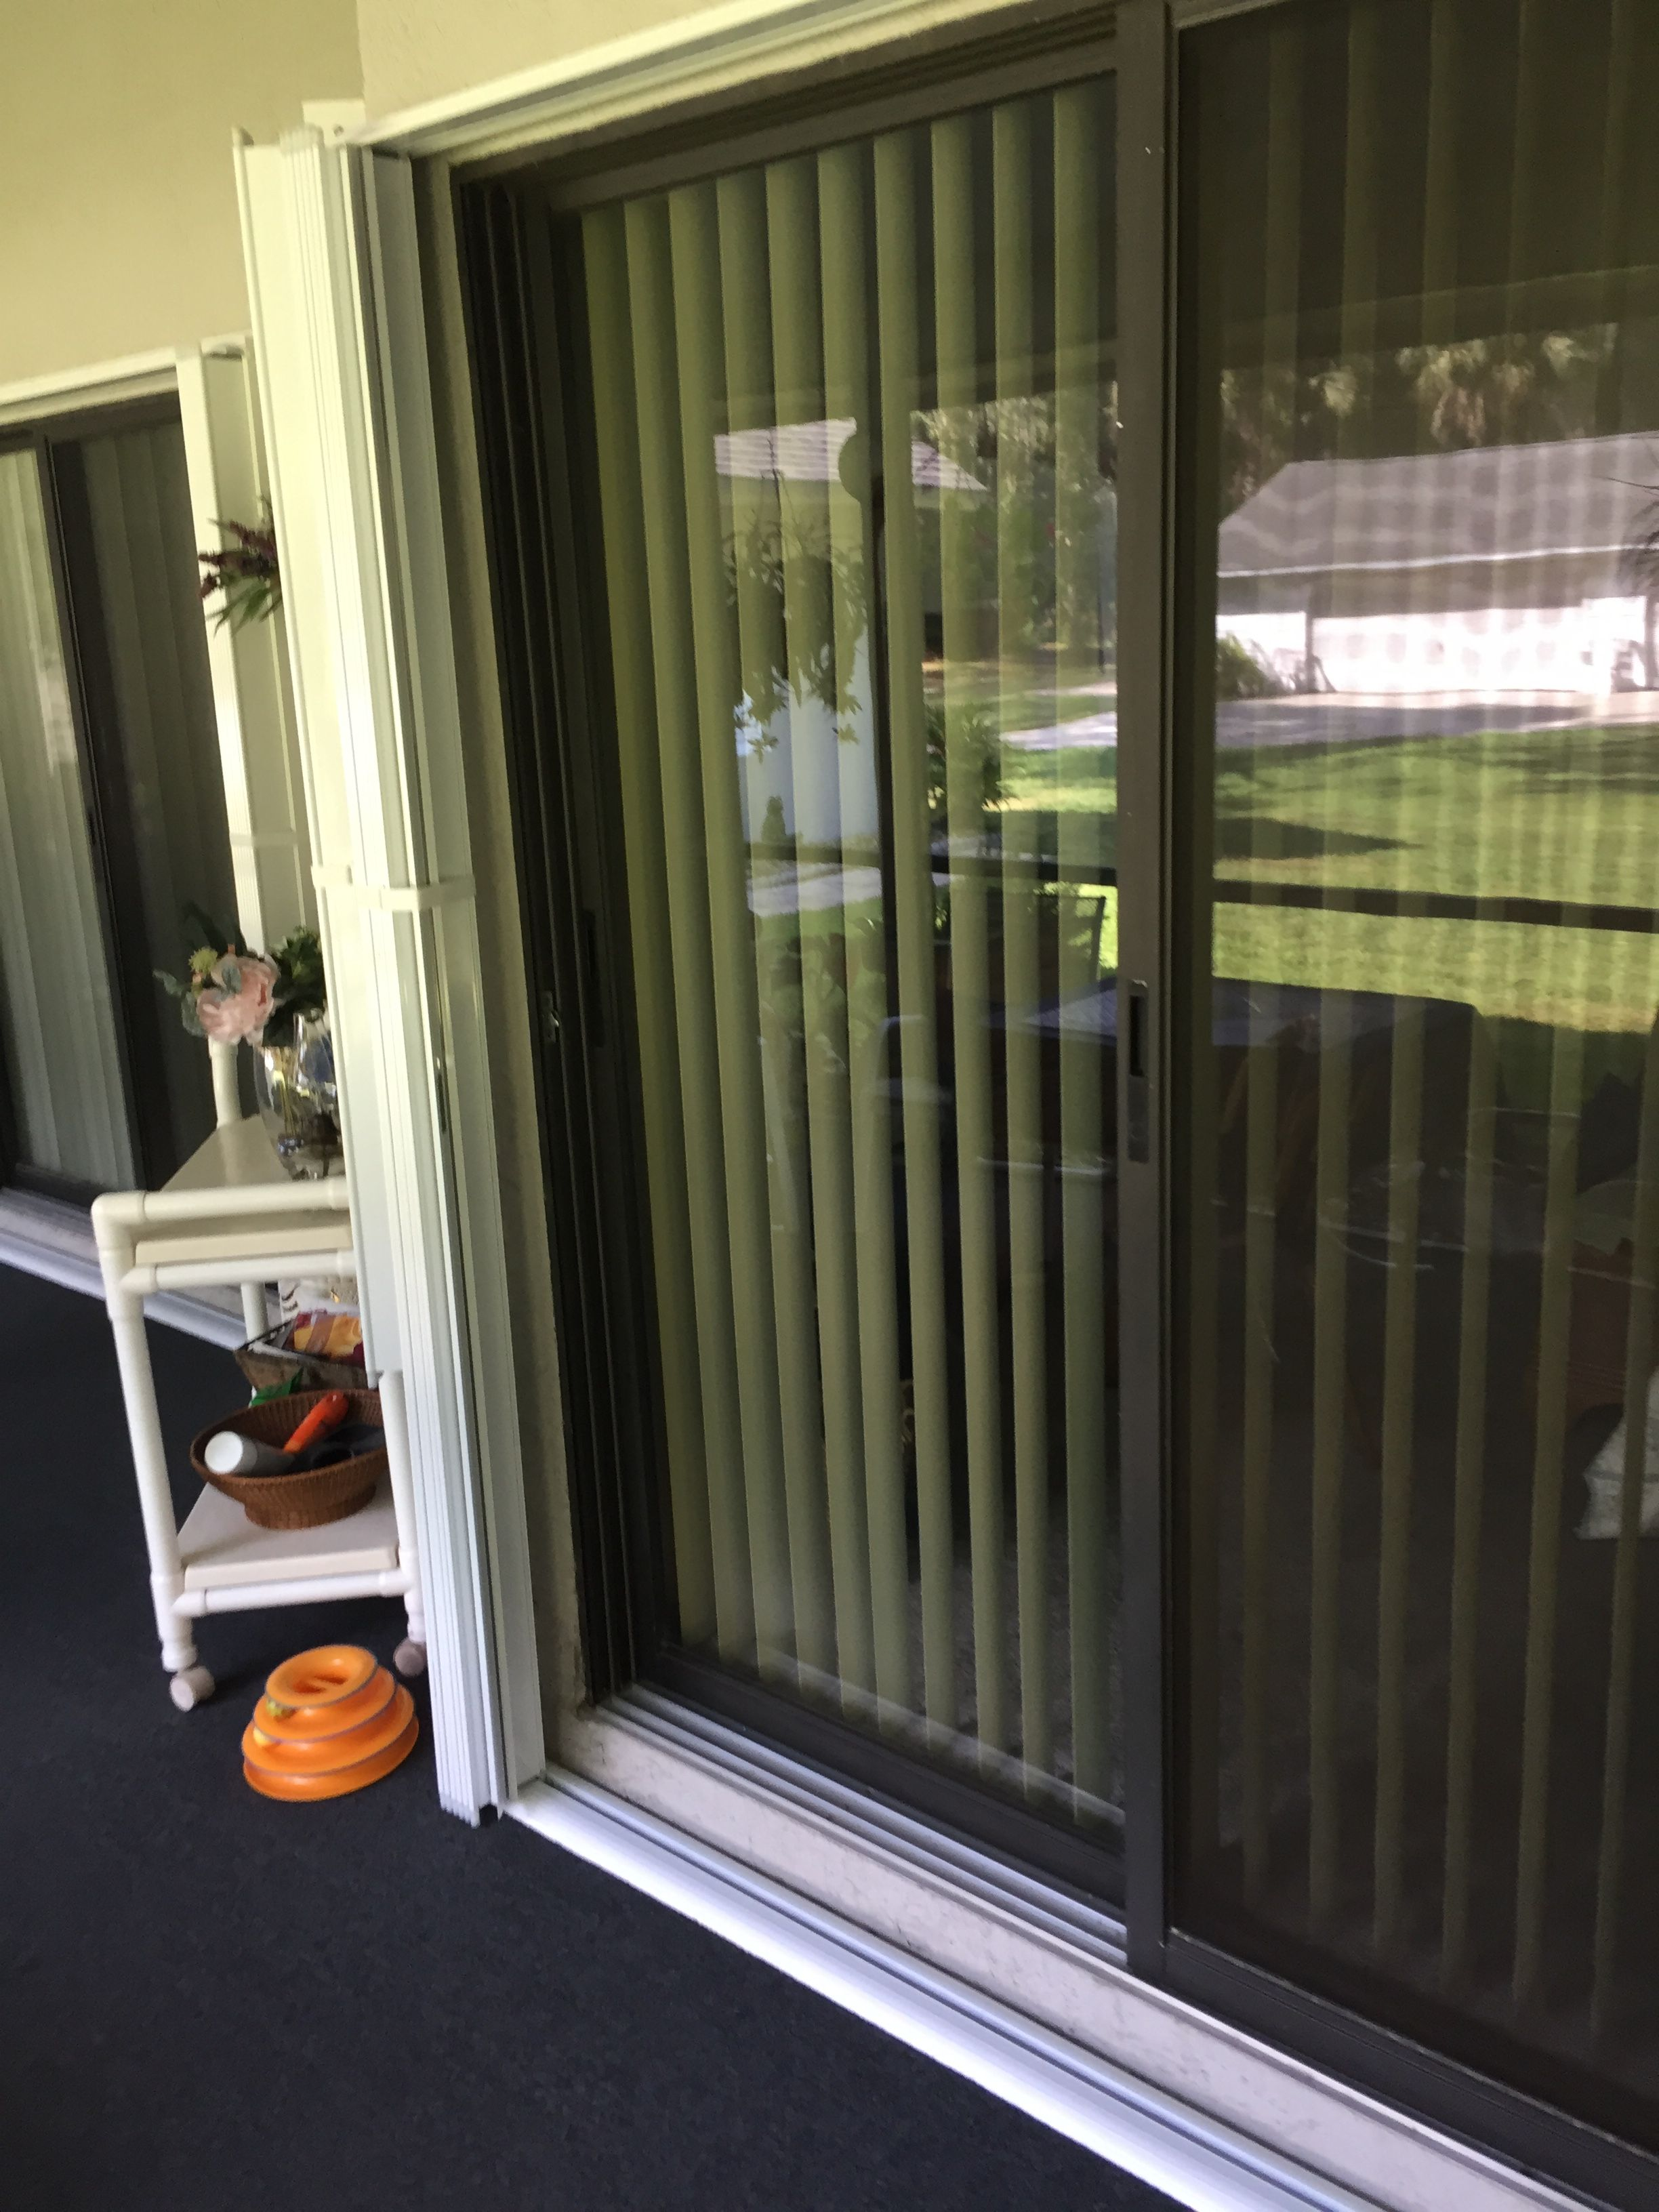 Accordion Shutters Commonly Called Folding Shutters The Most Popular Application For Accordion Storm Shutt Sliding Glass Door Glass Balcony Hurricane Shutters